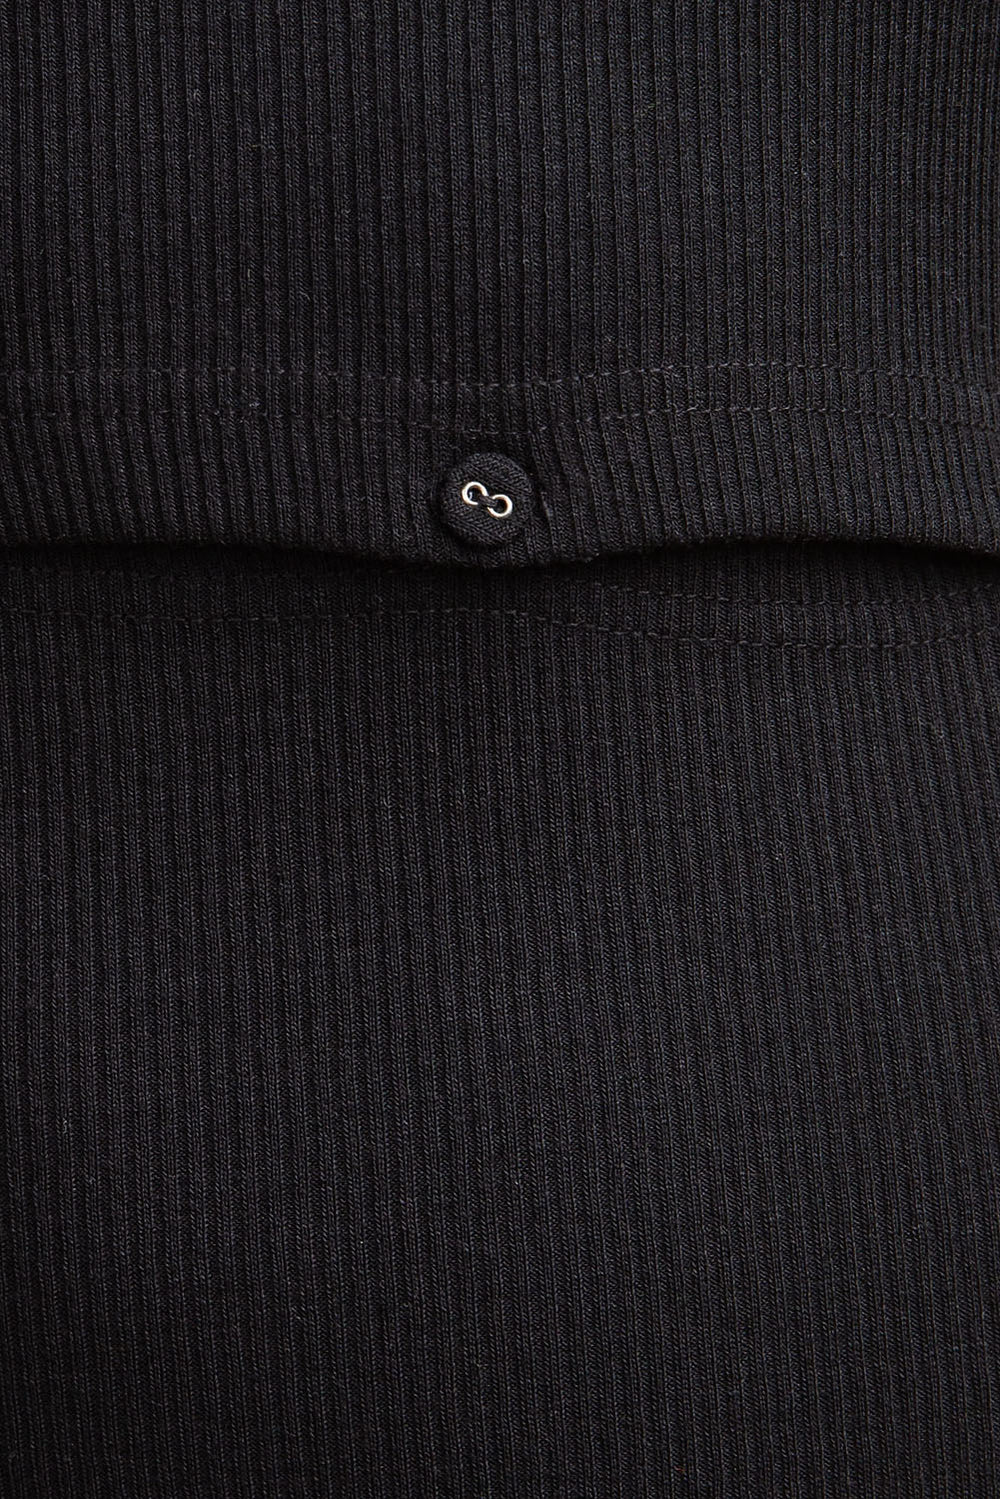 Button Detail Rib Knit Detail Siin Bees